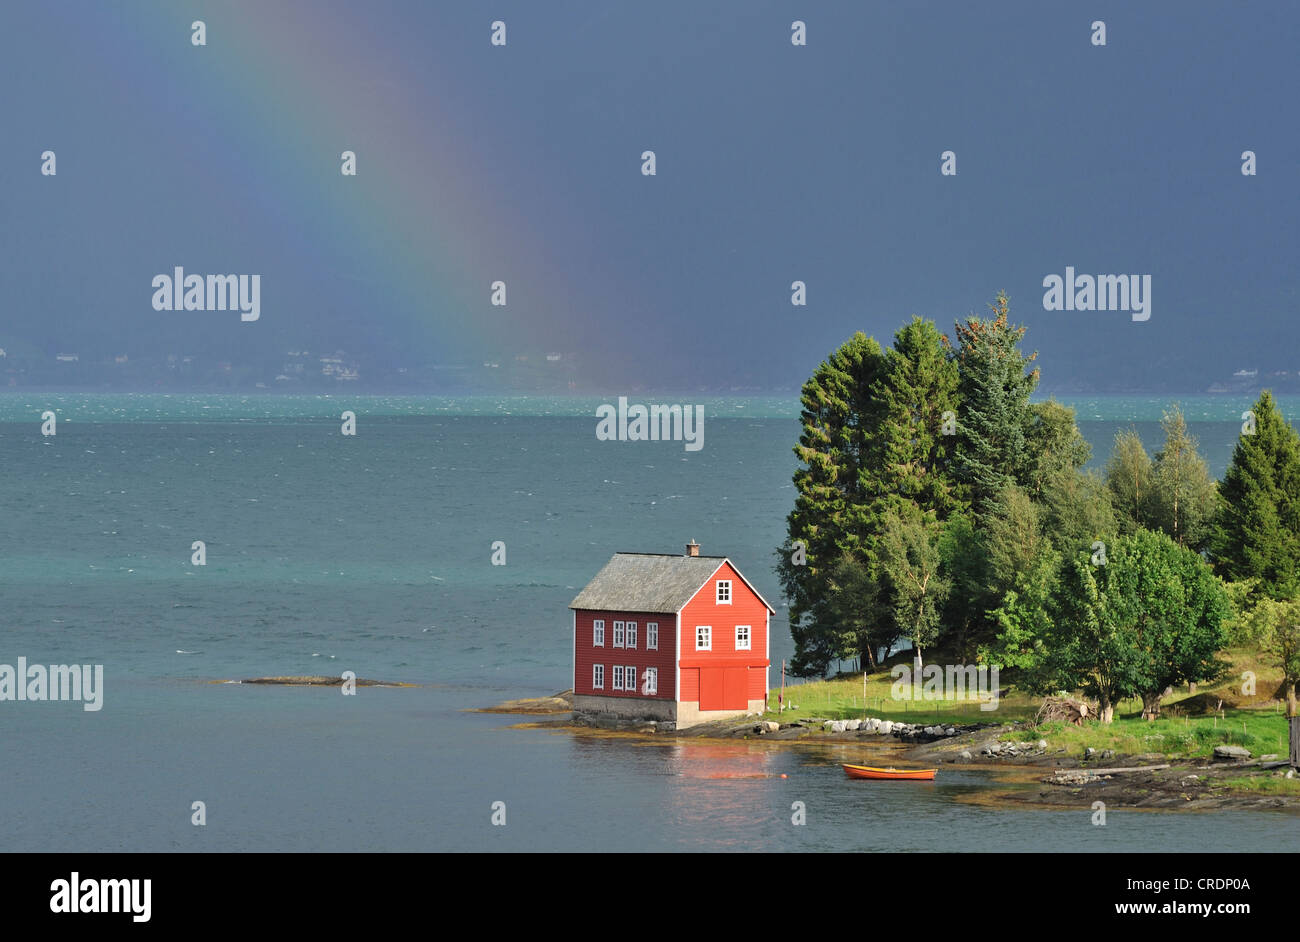 Wooden house on a small island in Hardanger Fjord, Oma, Norway - Stock Image